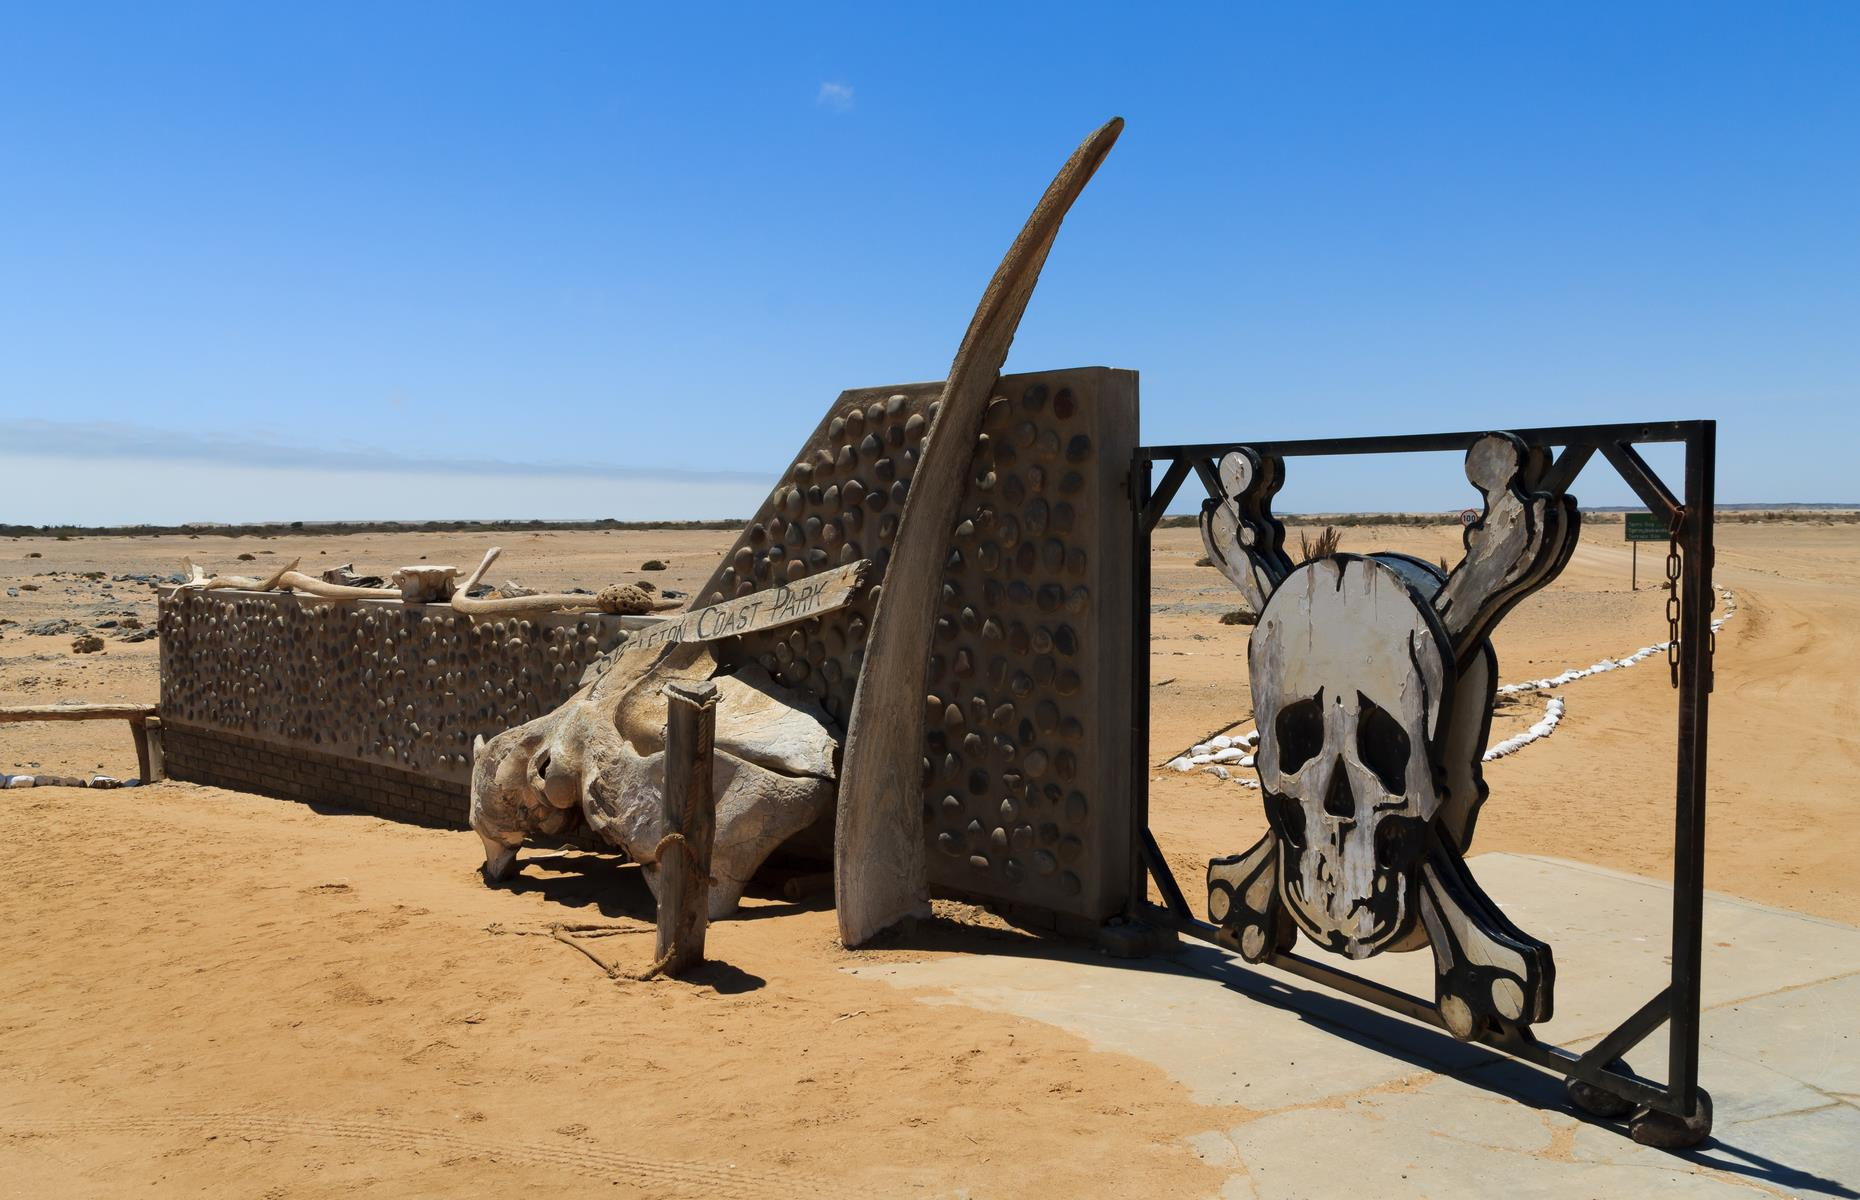 Slide 17 of 51: Brave tourists can usually visit the now 6,200 square miles (16,000sq km) of Skeleton Coast National Park and marvel at the shipwrecks and skeletons, as well as the dramatic sand dunes of the desert.Take a look at these amazing ruins where Mother Nature ran riot.